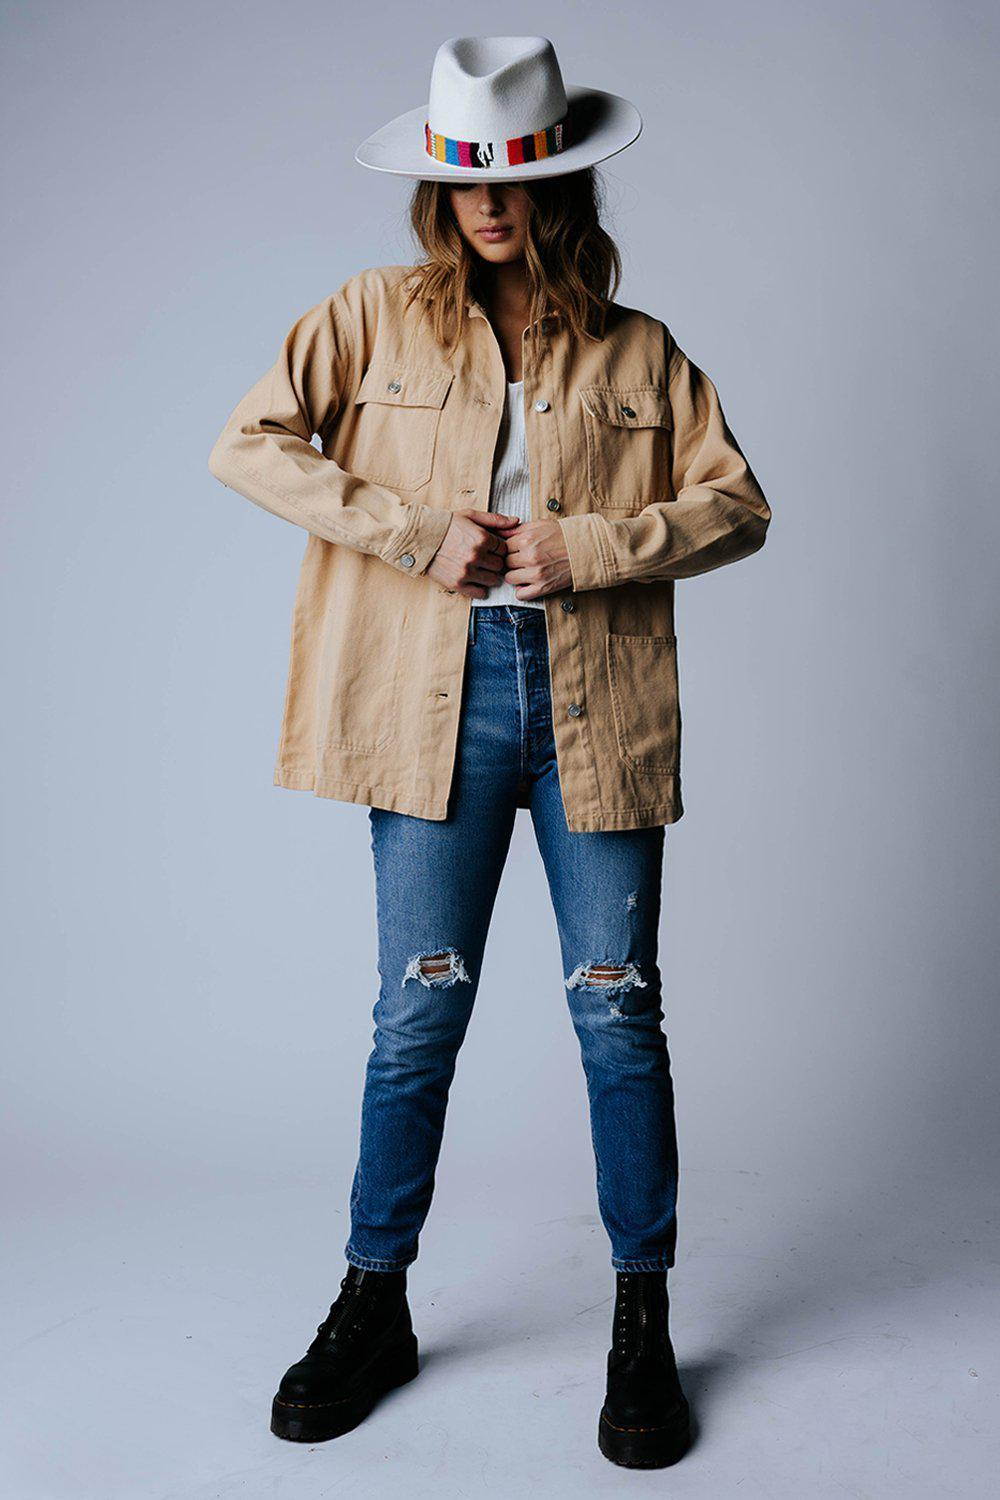 best_seller, Top of the World Oversized Jacket, Top, women's clothing, dresses, skirts, coats, jackets, shoes, boots, tops, tee shirts, jeans, free people, levi's, rollas, jumpsuits, bottoms, tops, sweaters, pullovers, pants, shorts, sweats,.